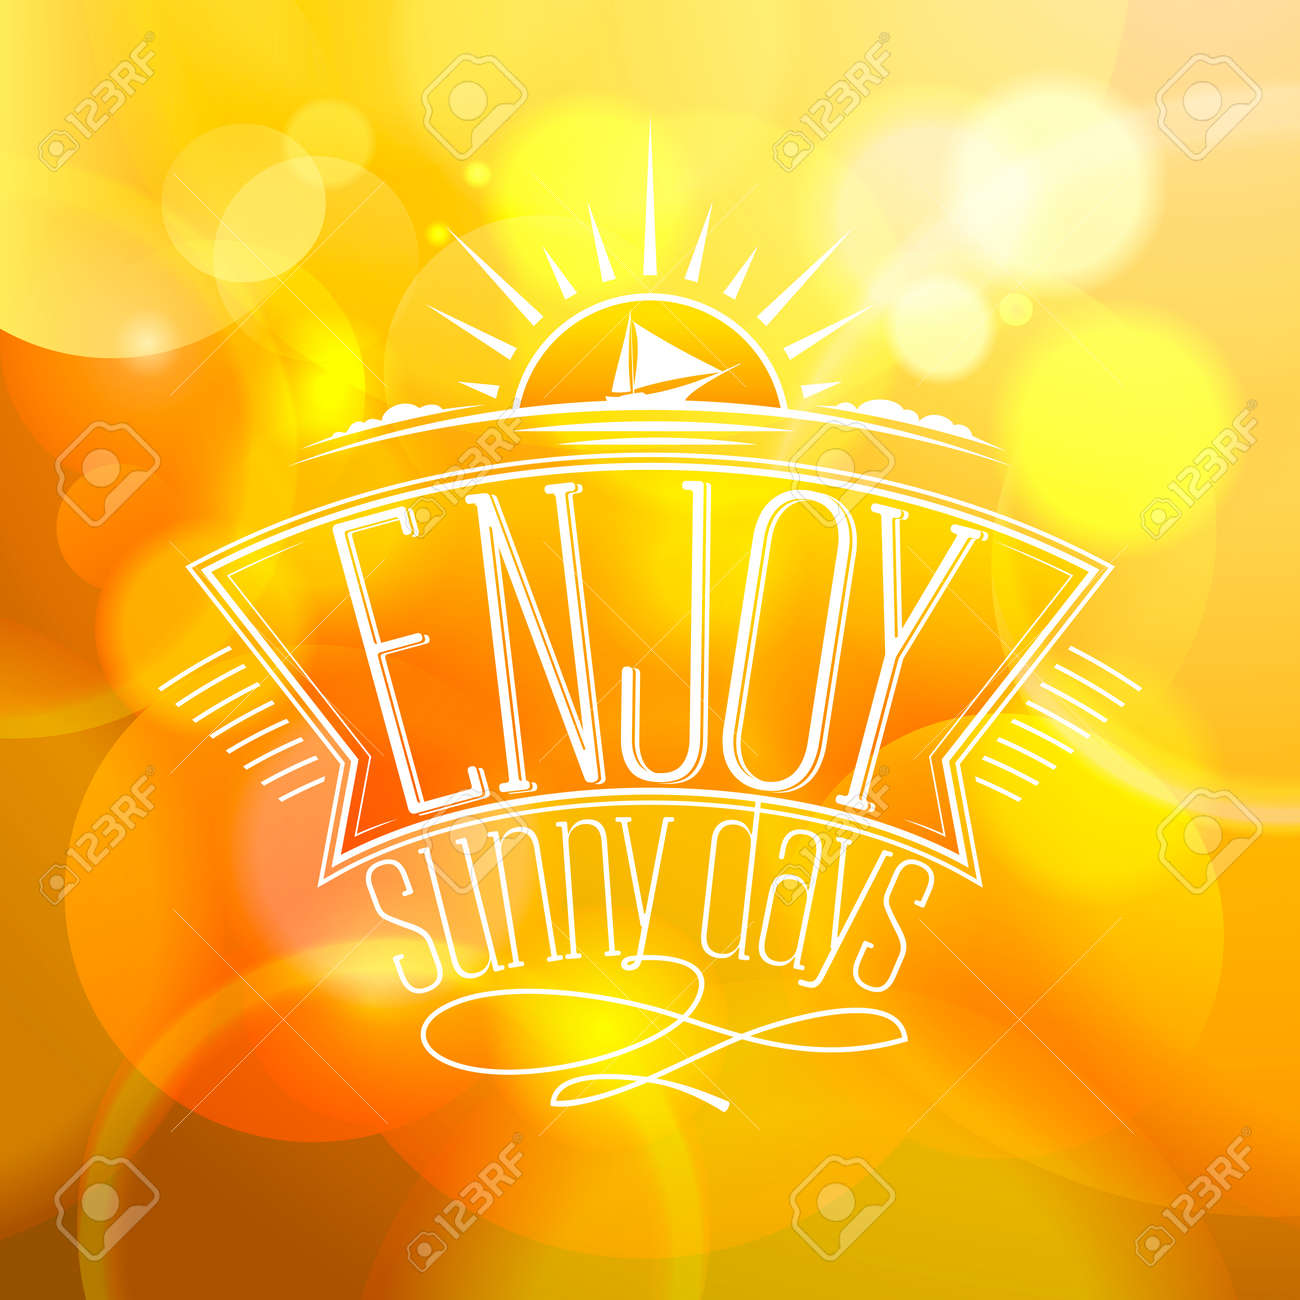 Yellow bokeh quote background - Enjoy sunny days. Happy vacation..